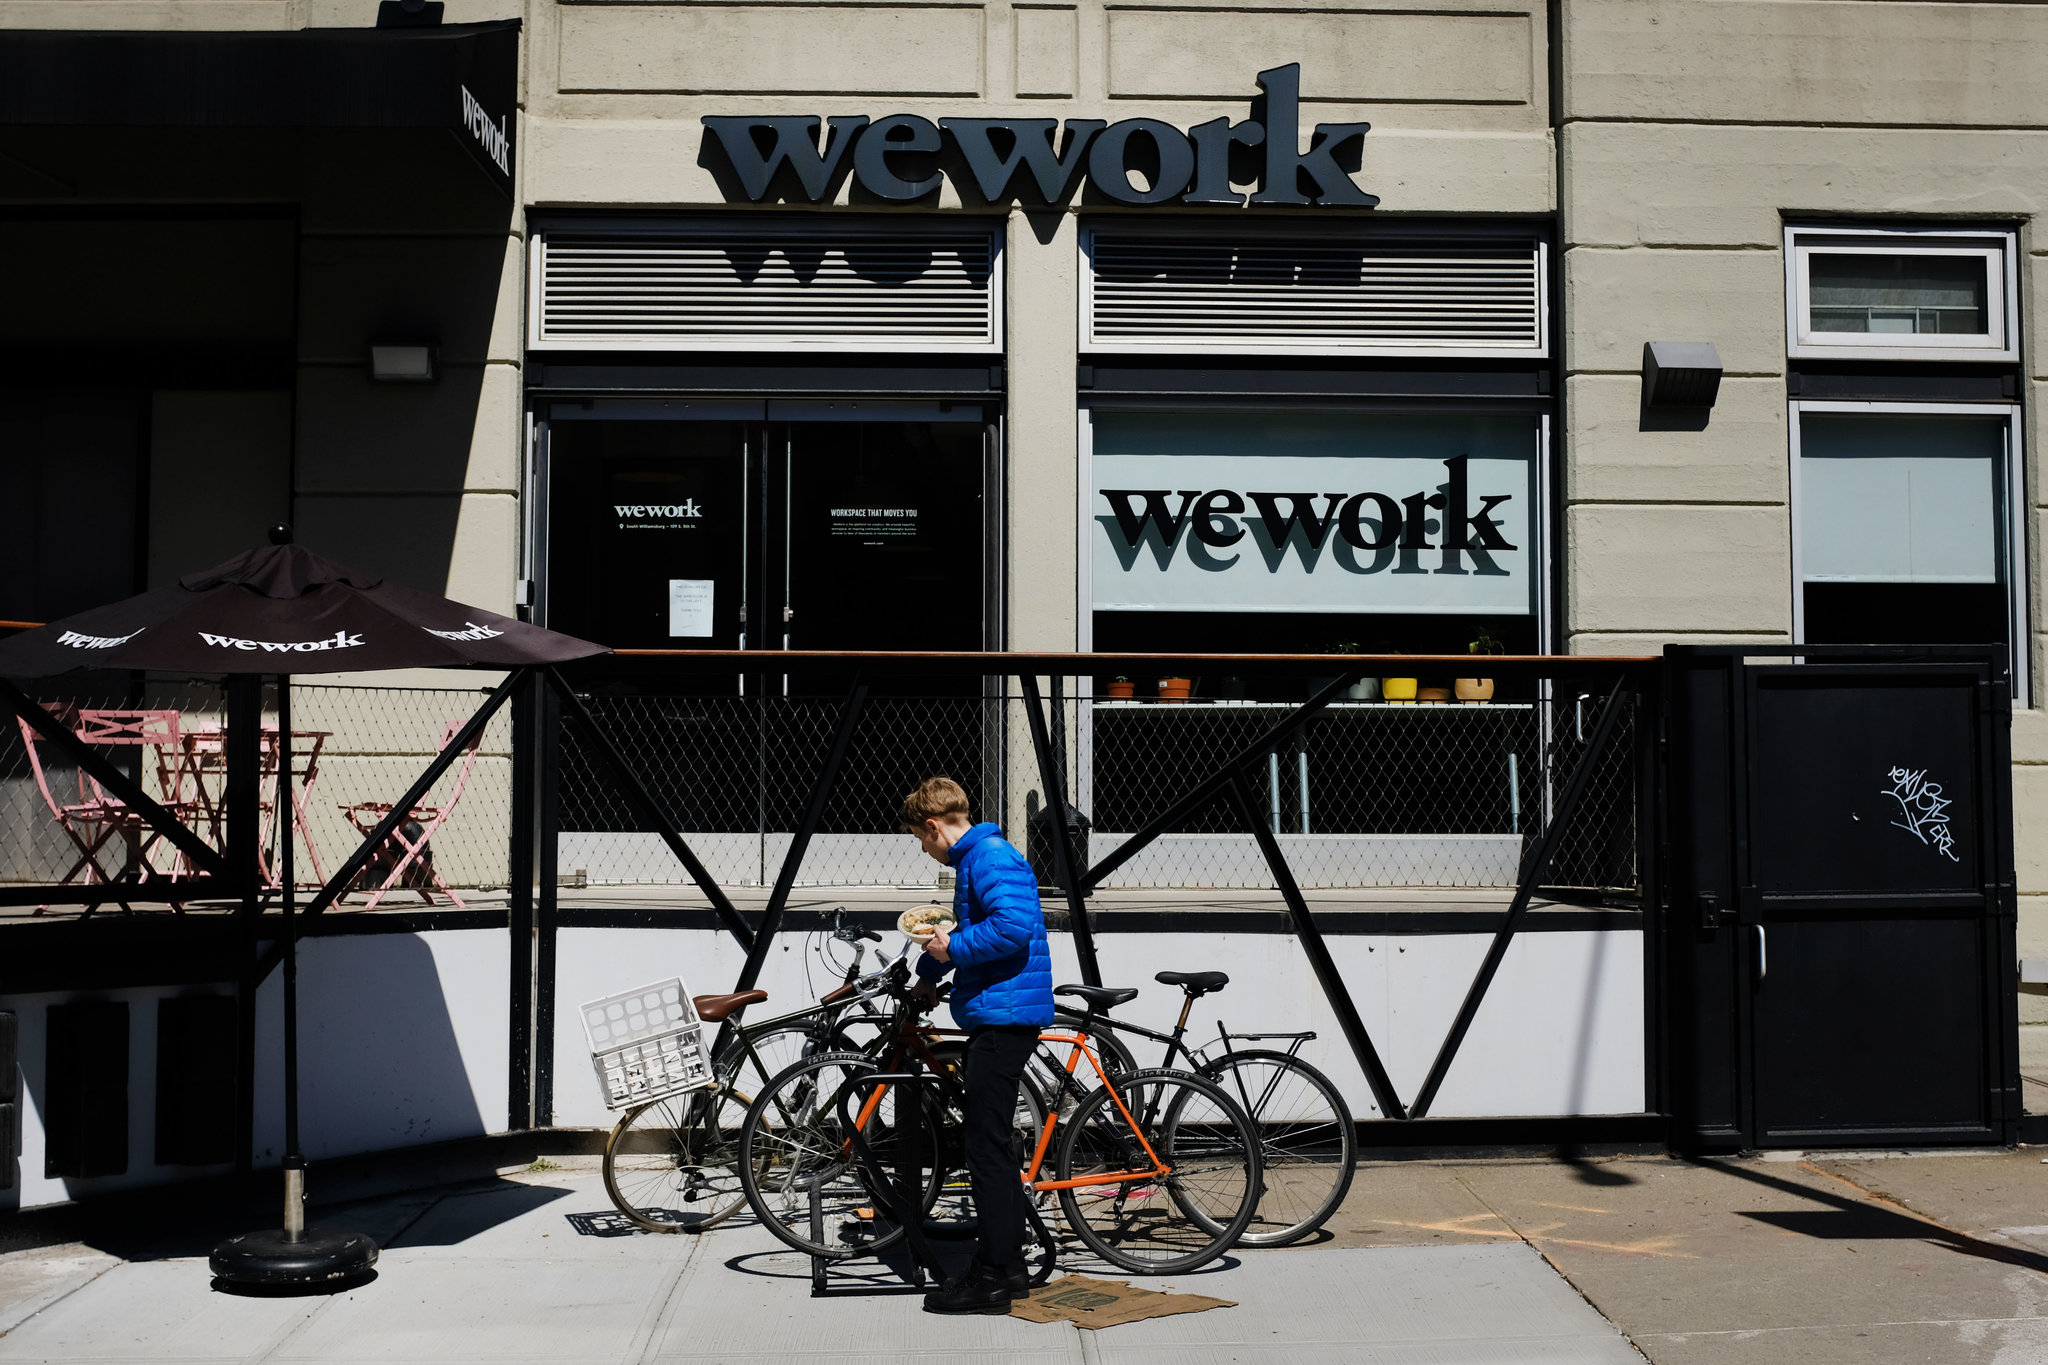 NYT: WeWork Limits C.E.O.'s Power as It Presses Forward With Stock Sale Thumbnail